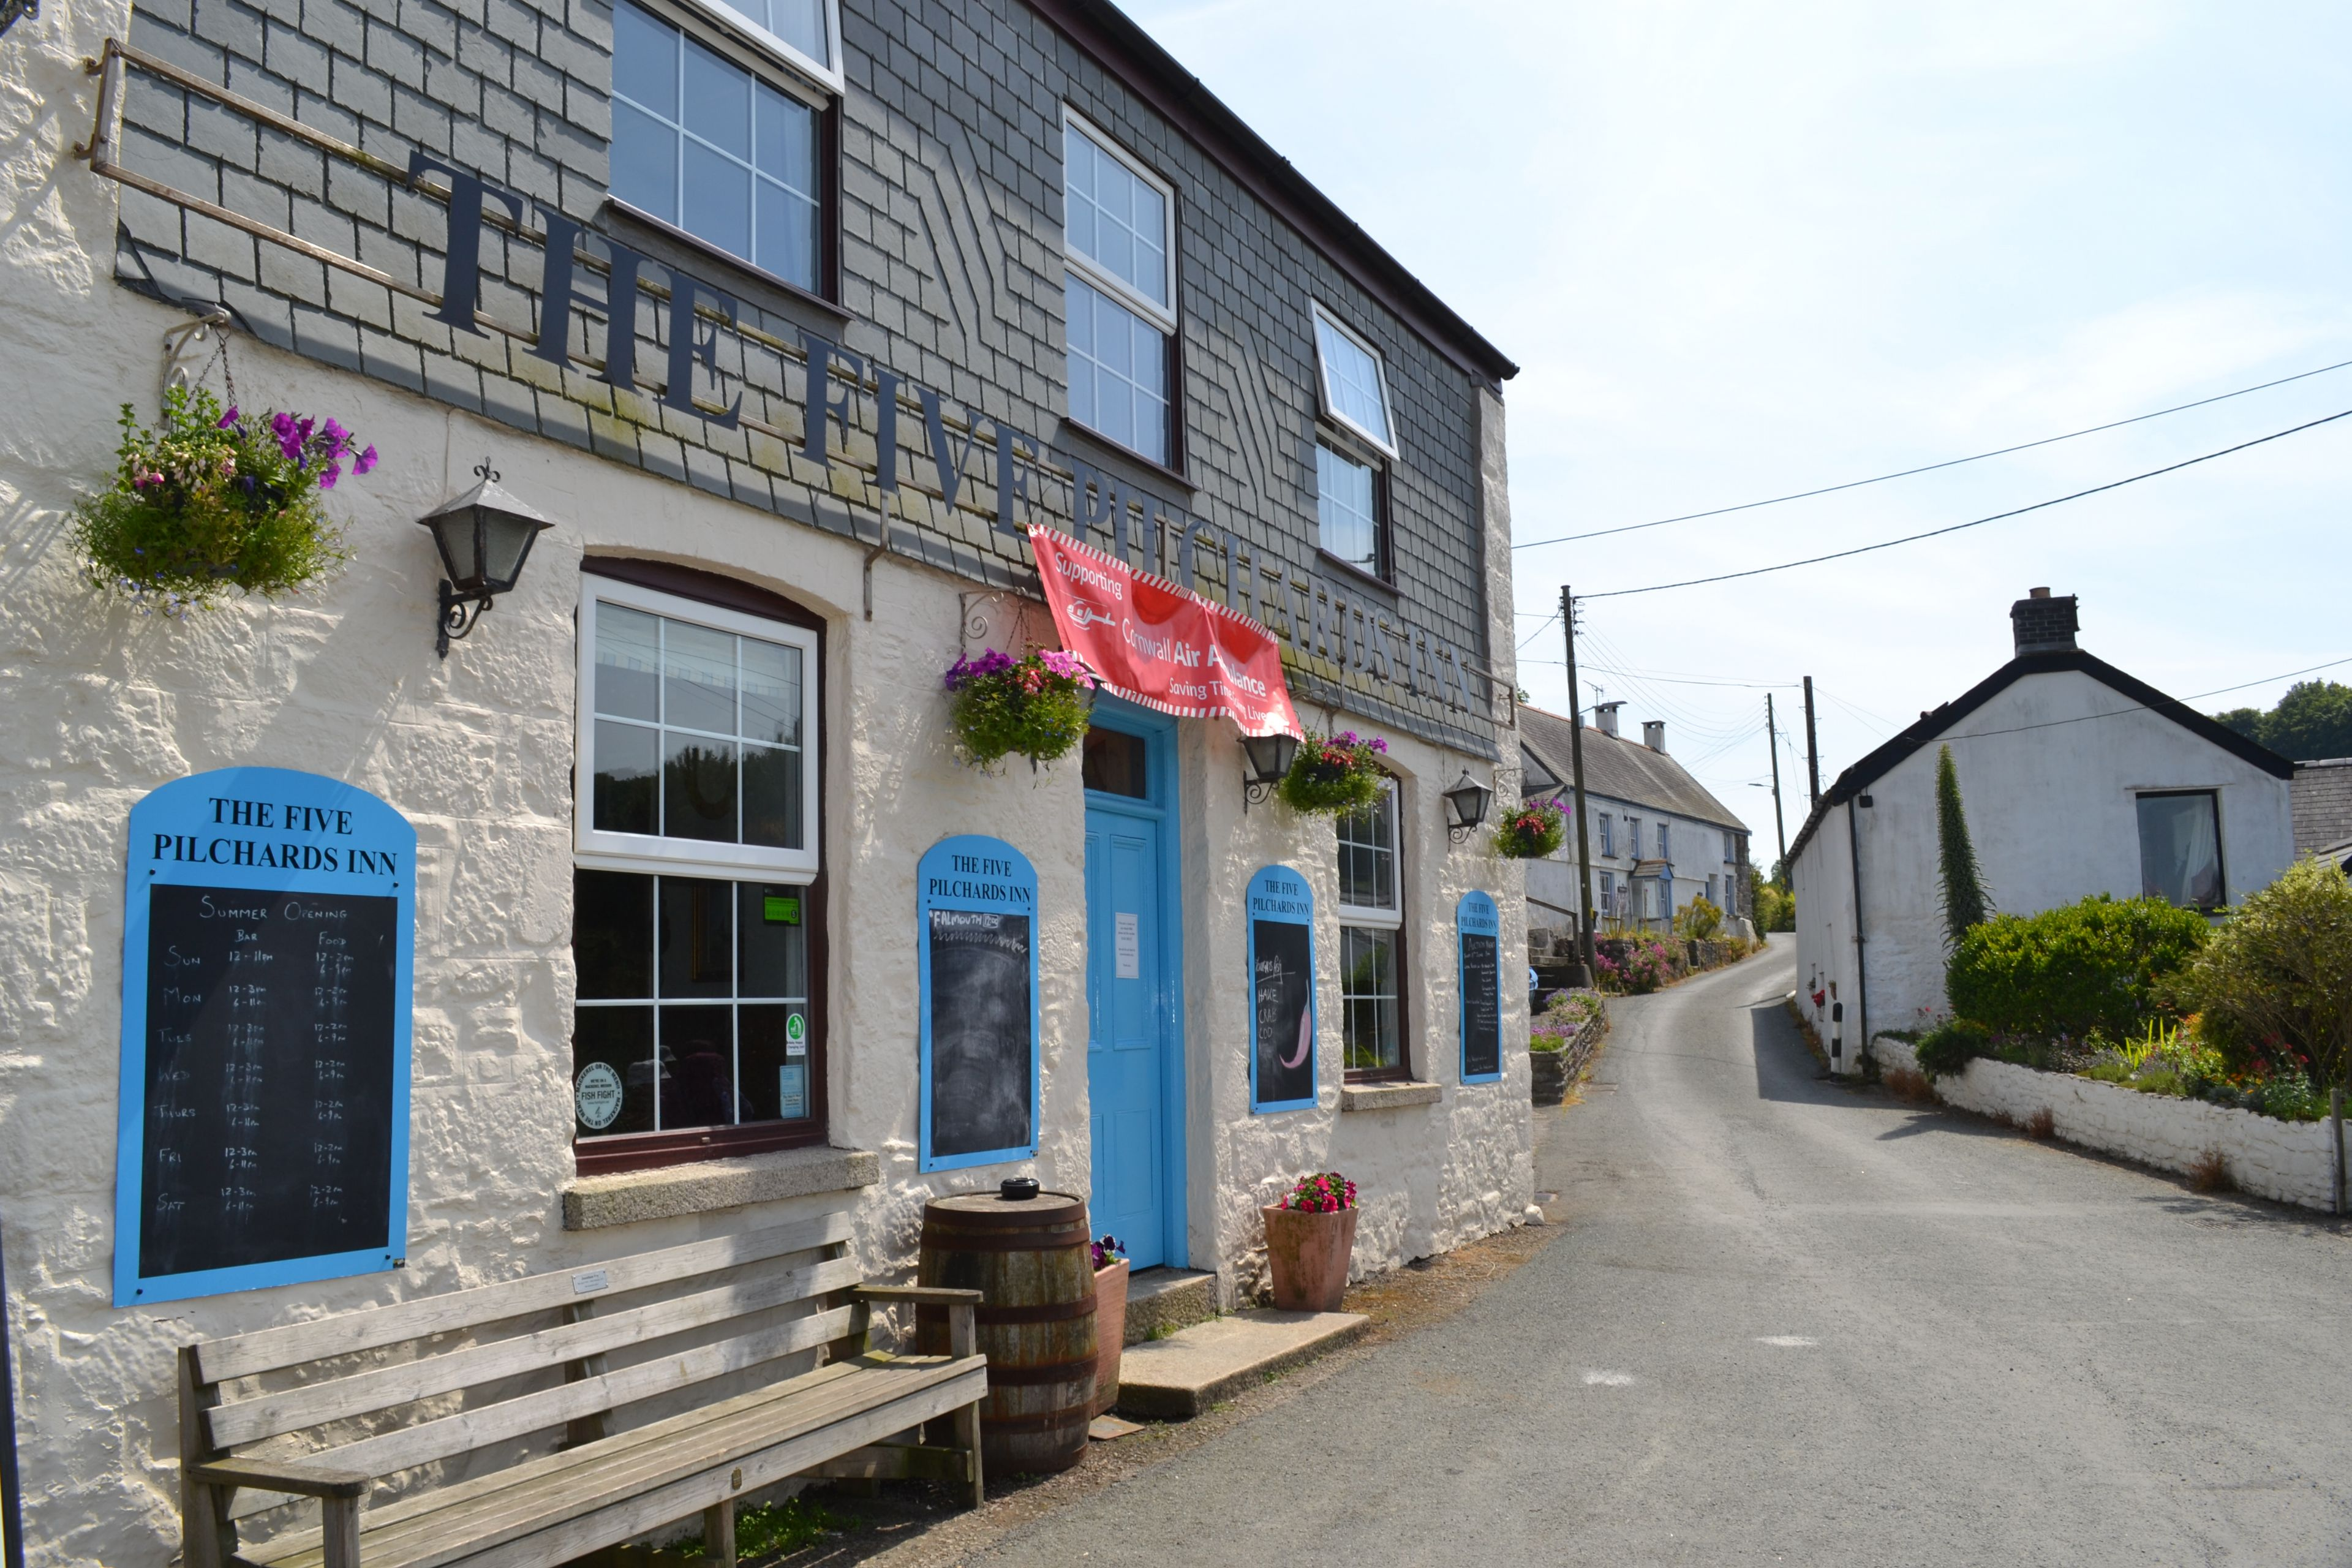 The Five Pilchards Pub at Porthallow